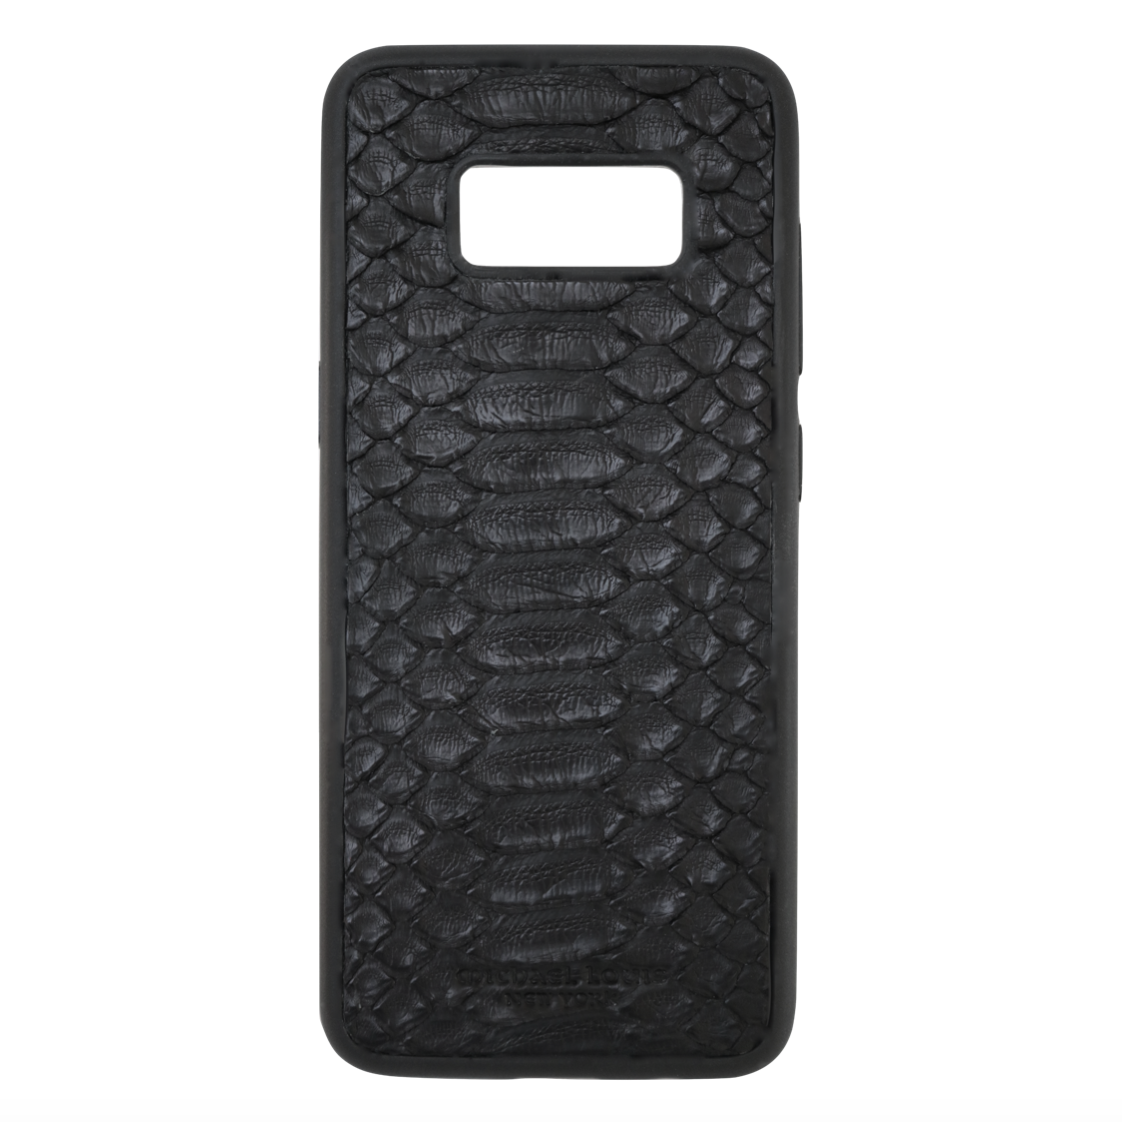 brand new 5702b bbe5b Black Python Galaxy S8 Case